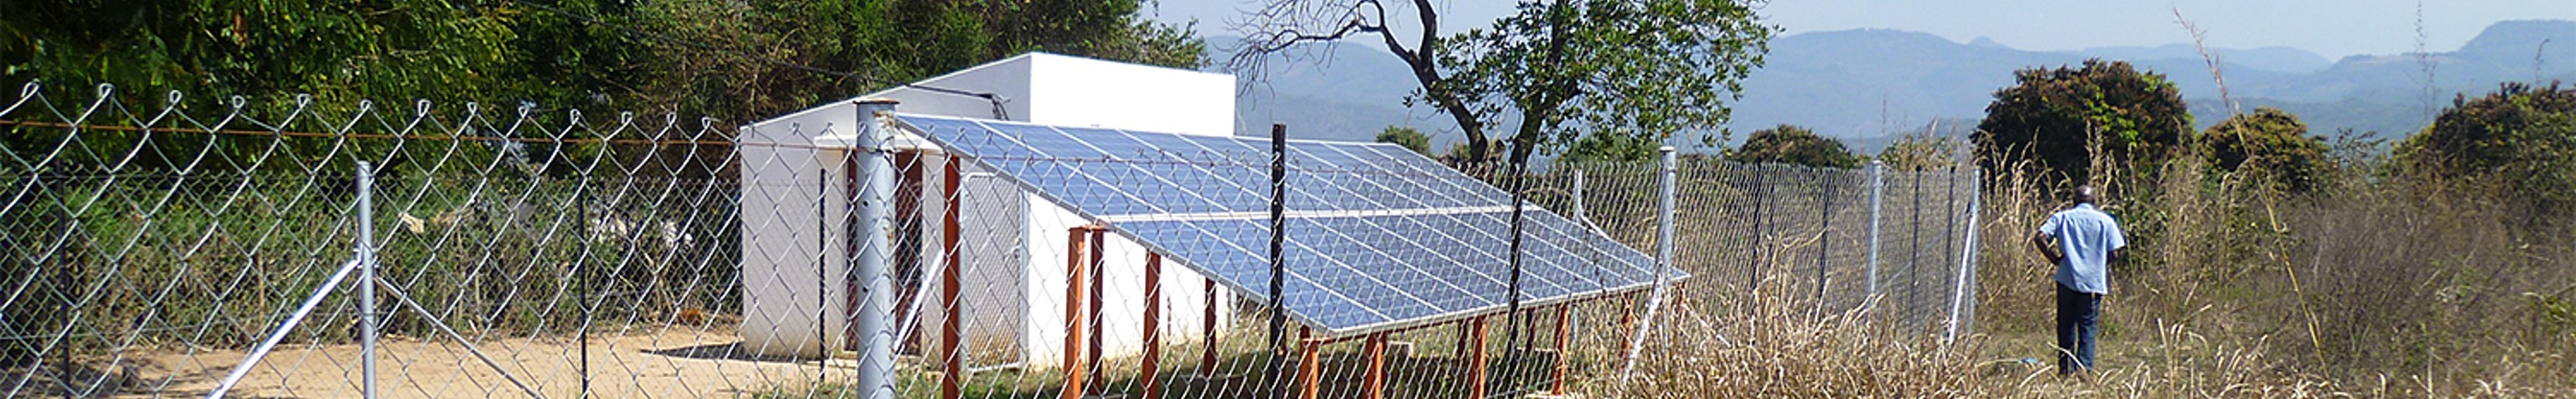 solar mini grid system at Chinhambuzi